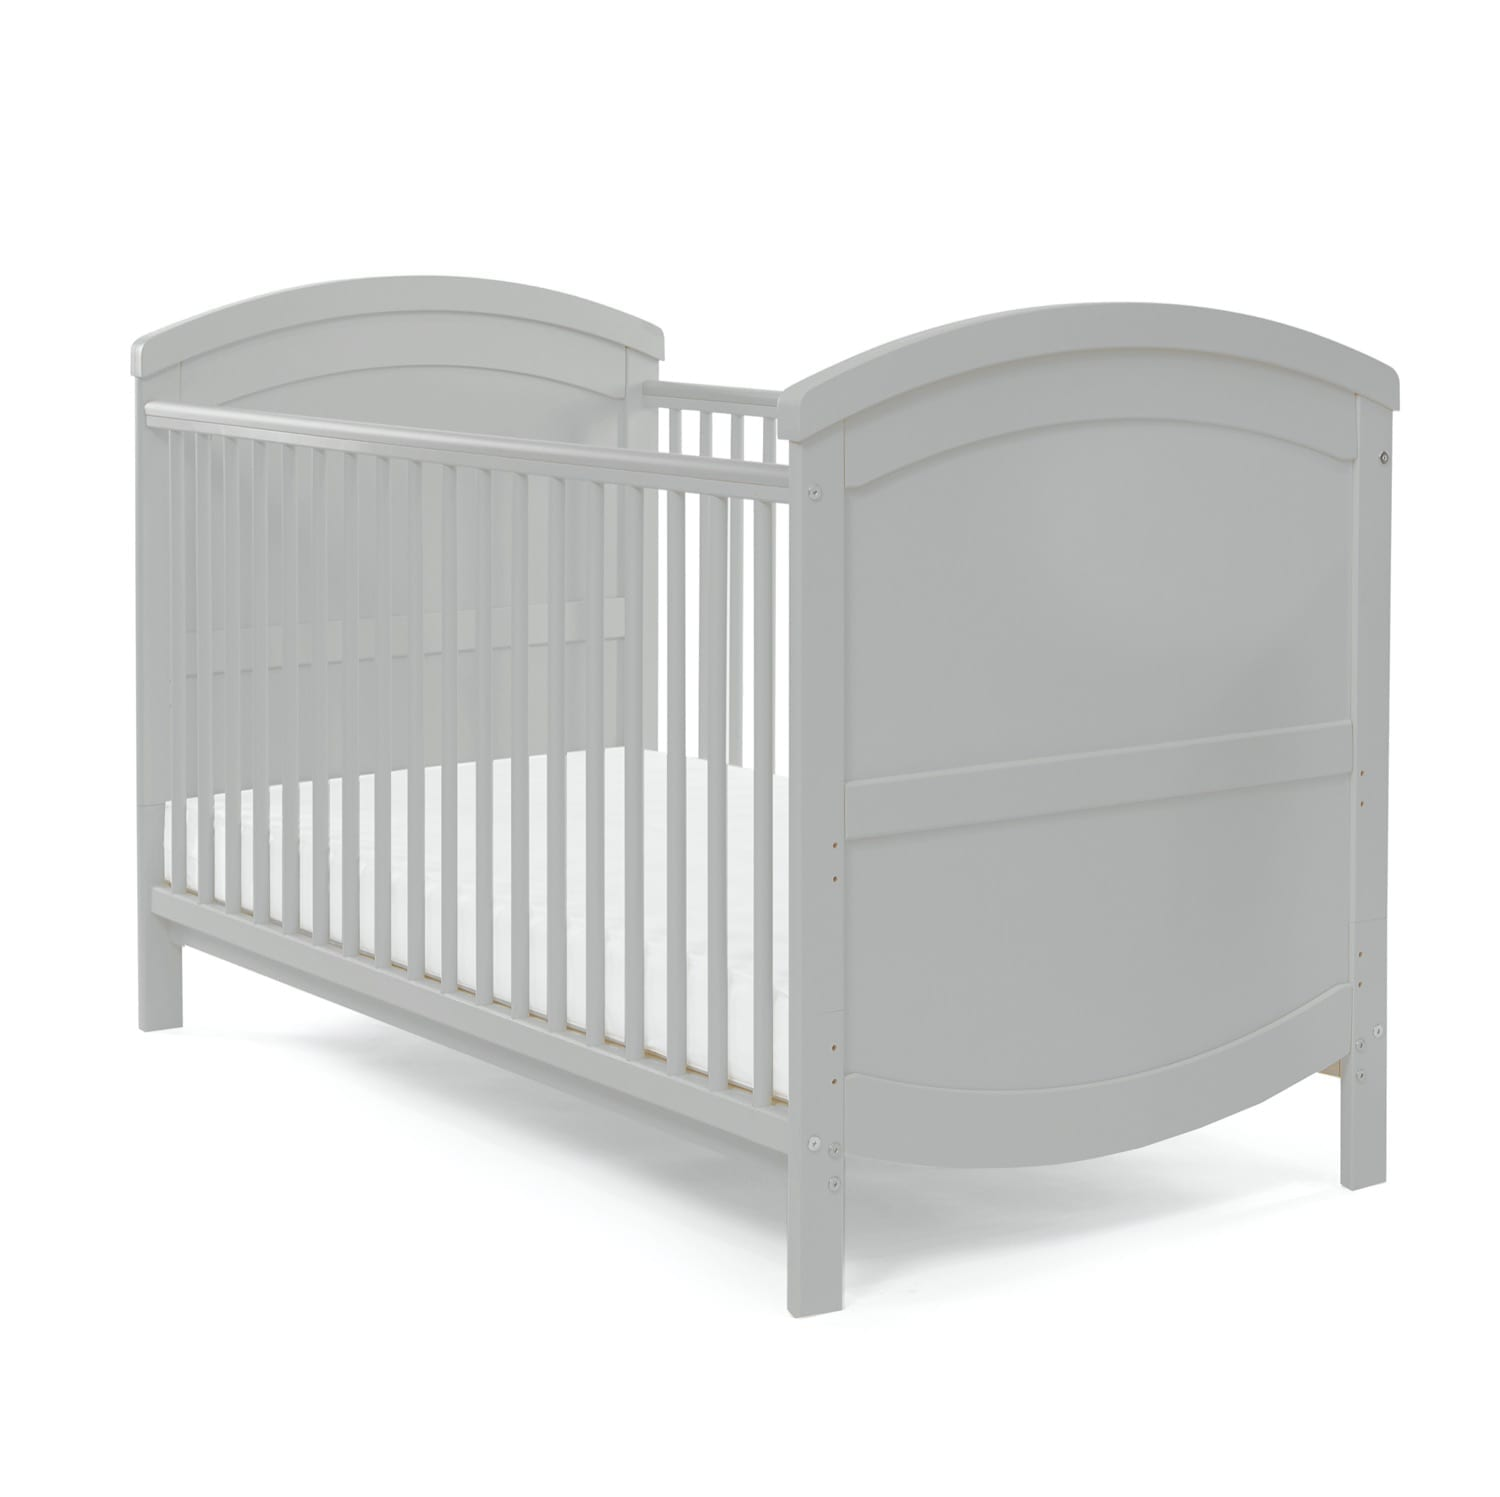 Walt Cot Bed – Grey product image